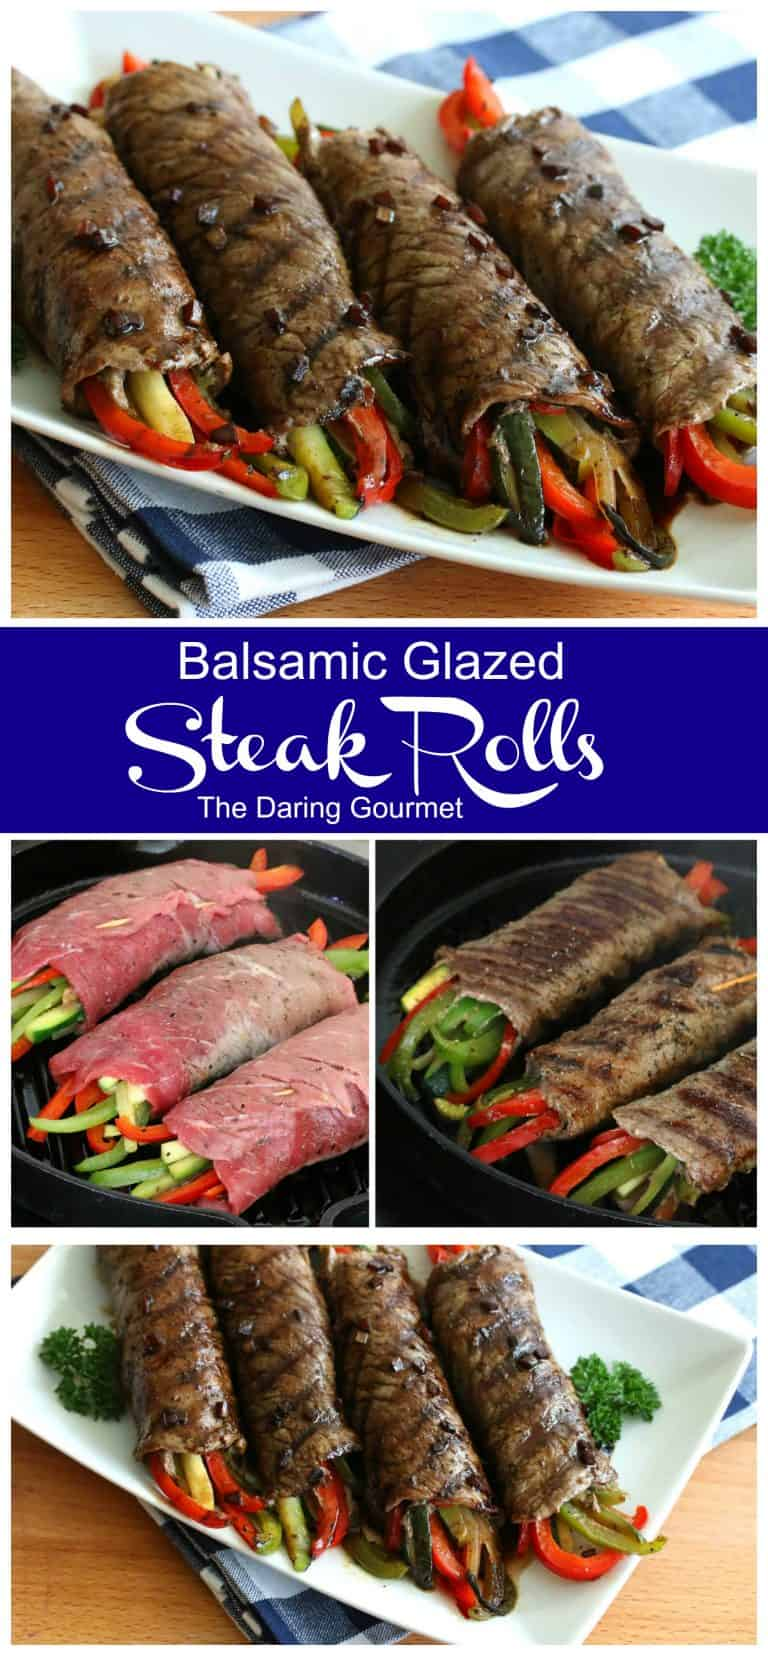 steak rolls recipe balsamic glazed